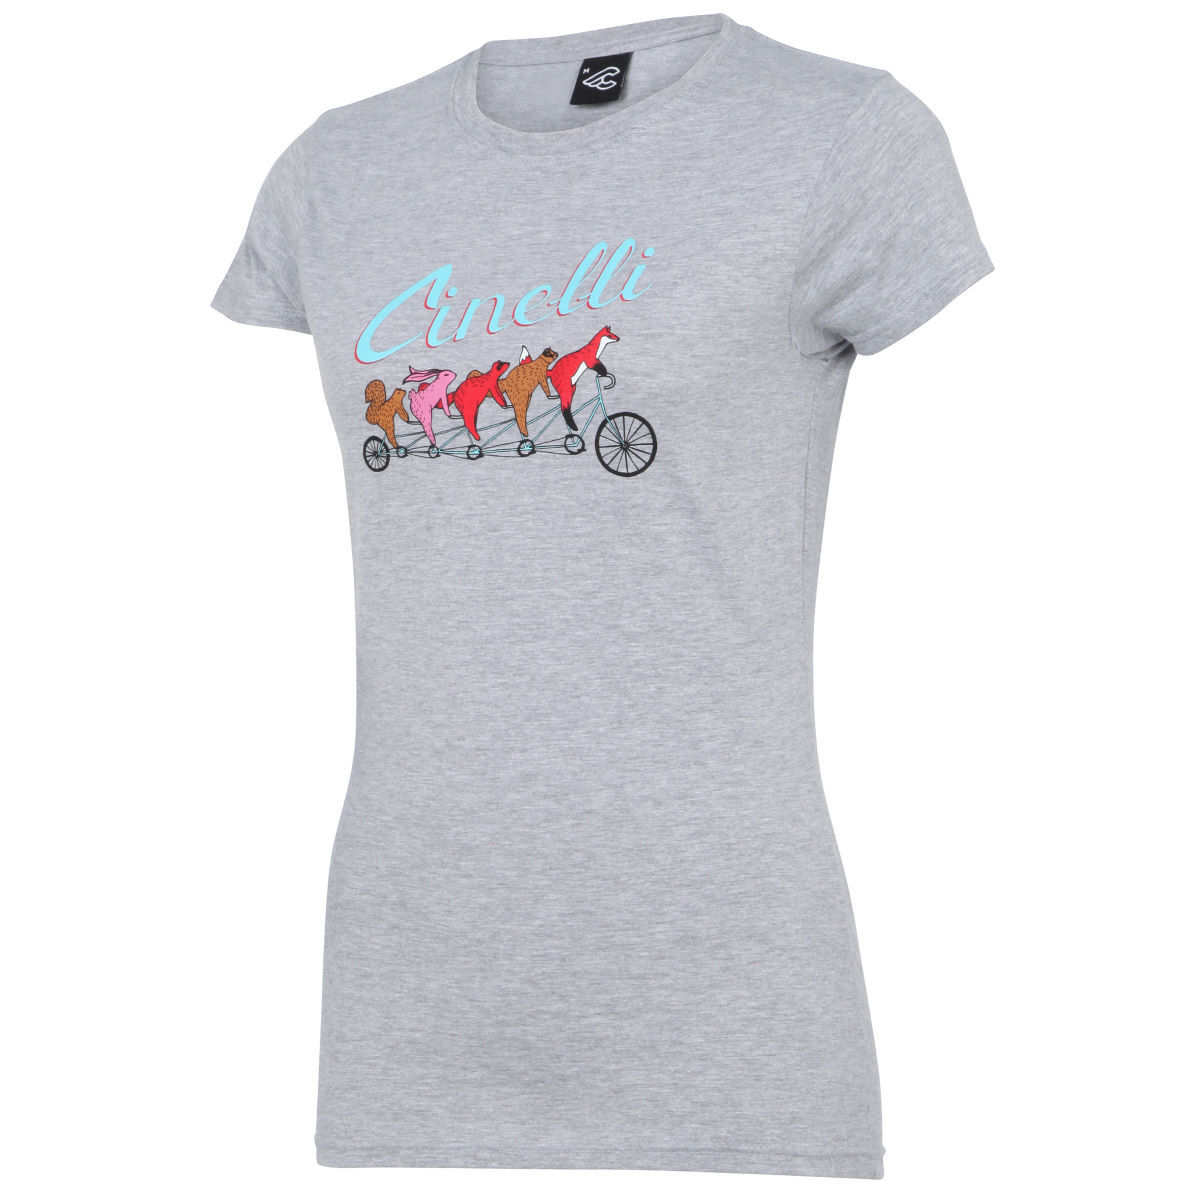 T-shirt Femme Cinelli Forest Friend by Emily May Rose - L Gris